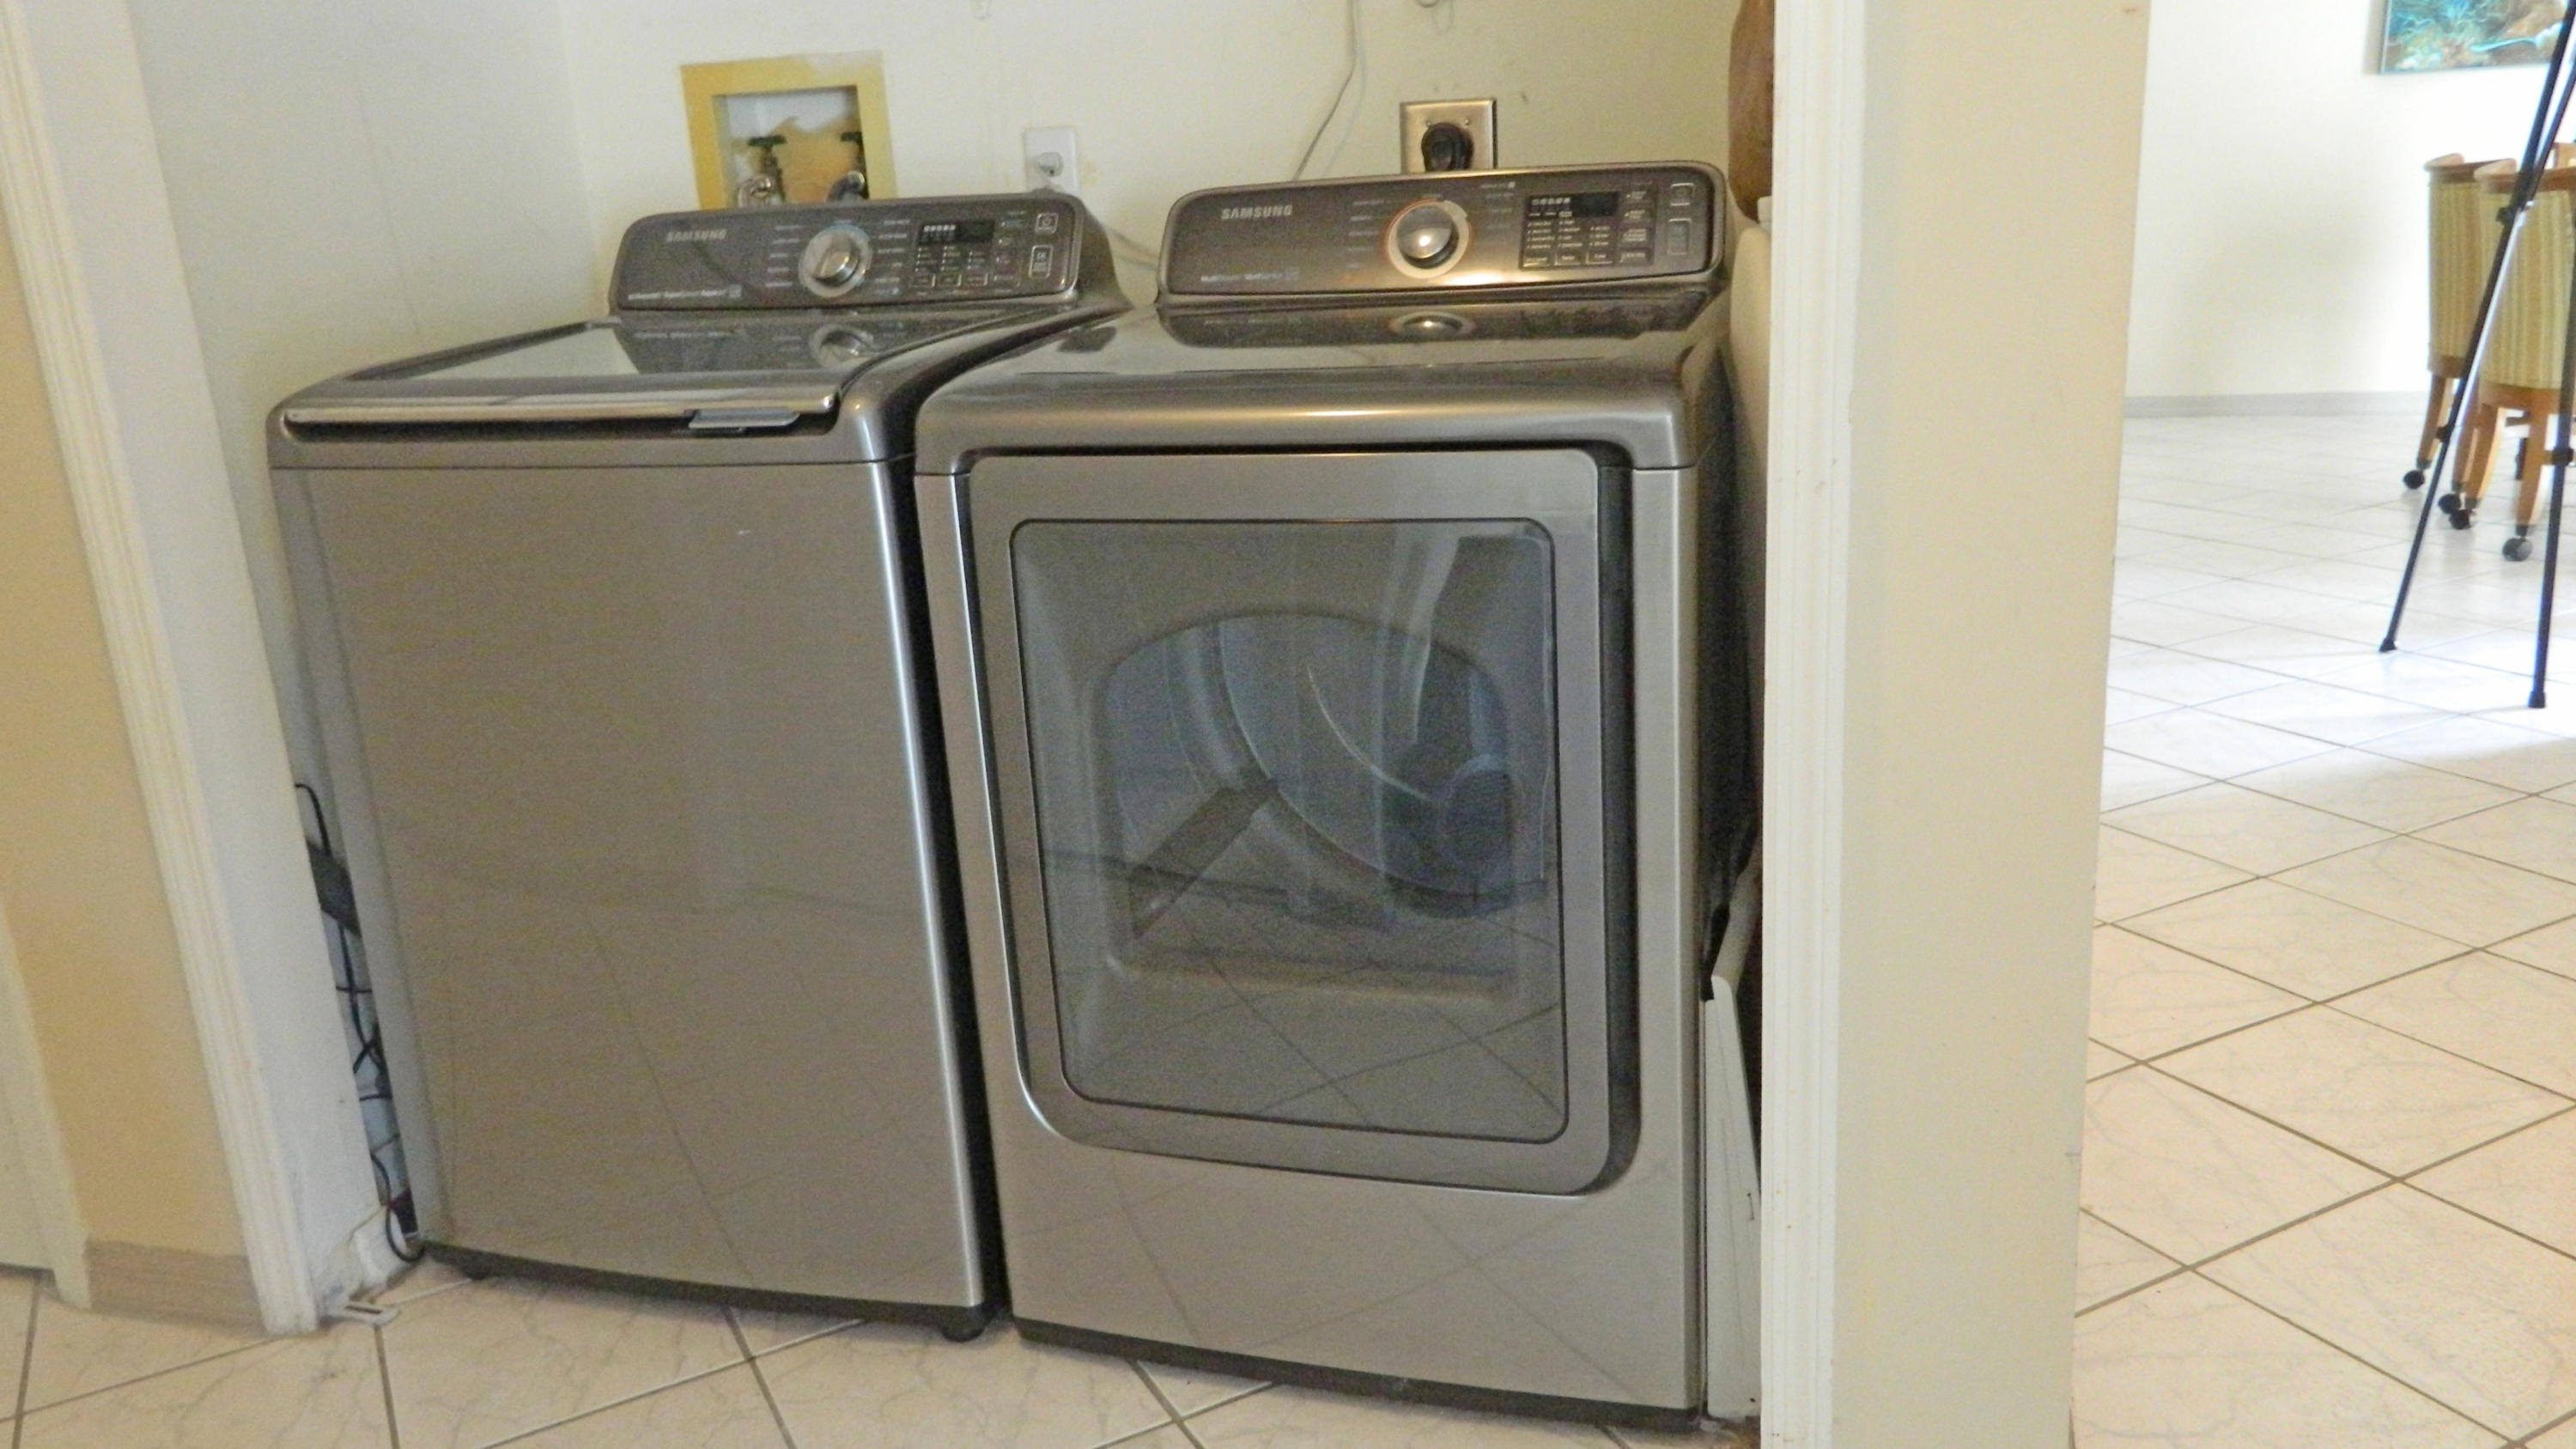 5 NEW Washer DryerJPG